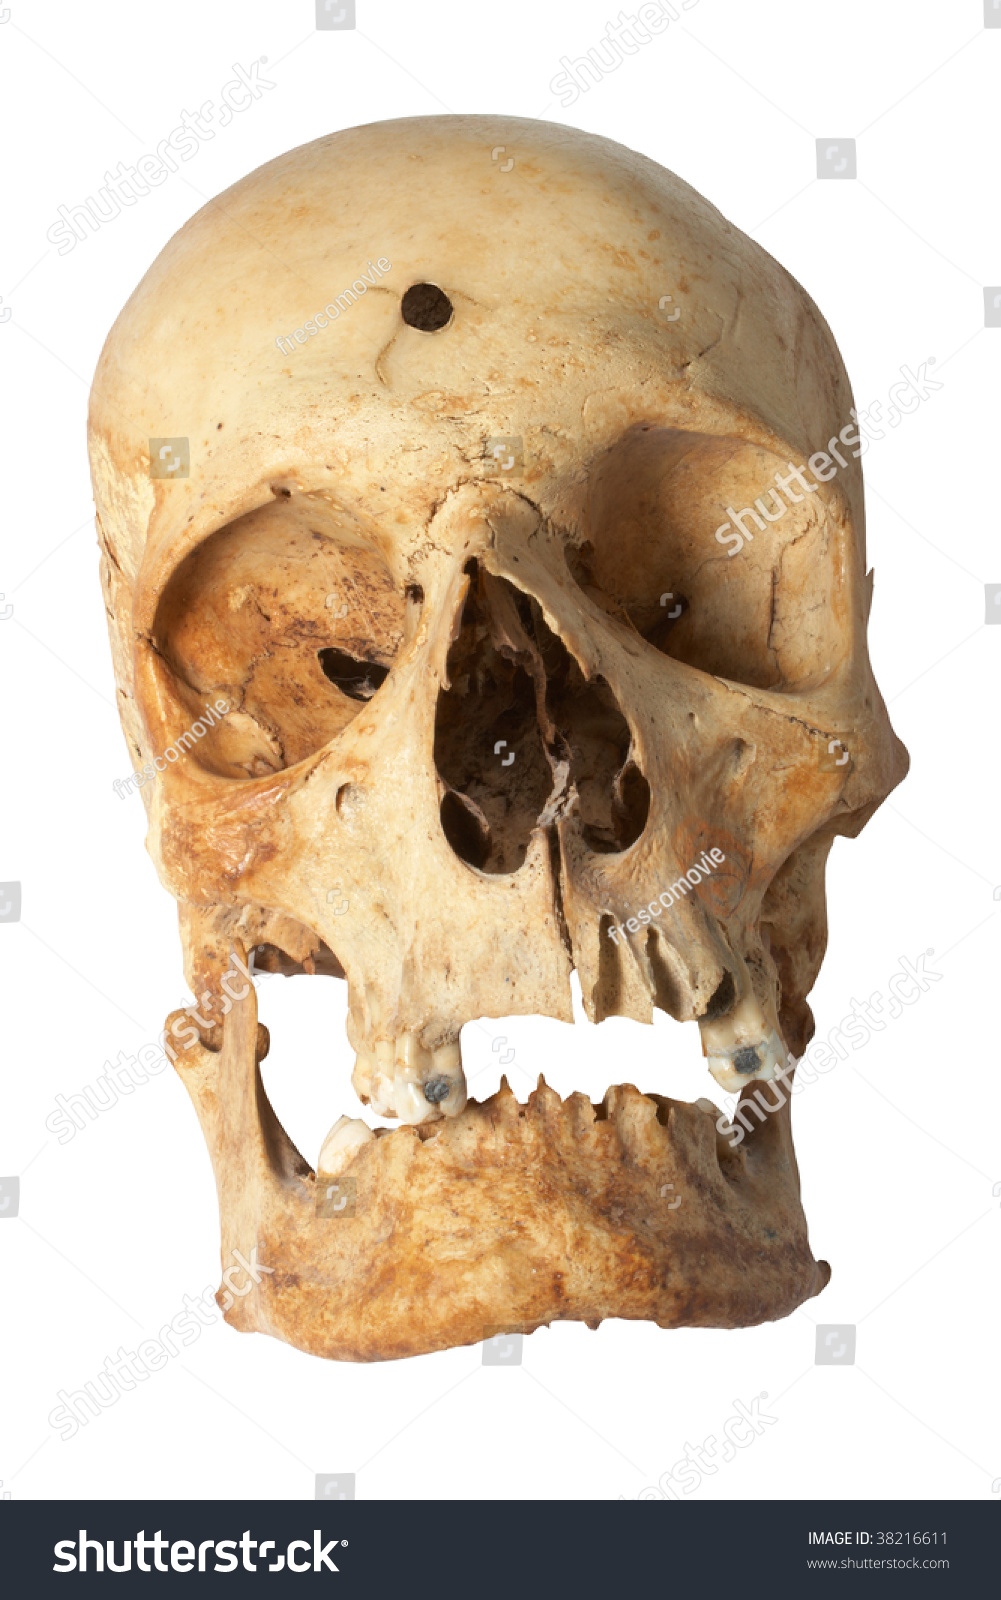 Human Skull Bullet Hole Stock Photo Edit Now 38216611 Are you searching for bullet hole png images or vector? https www shutterstock com image photo human skull bullet hole 38216611